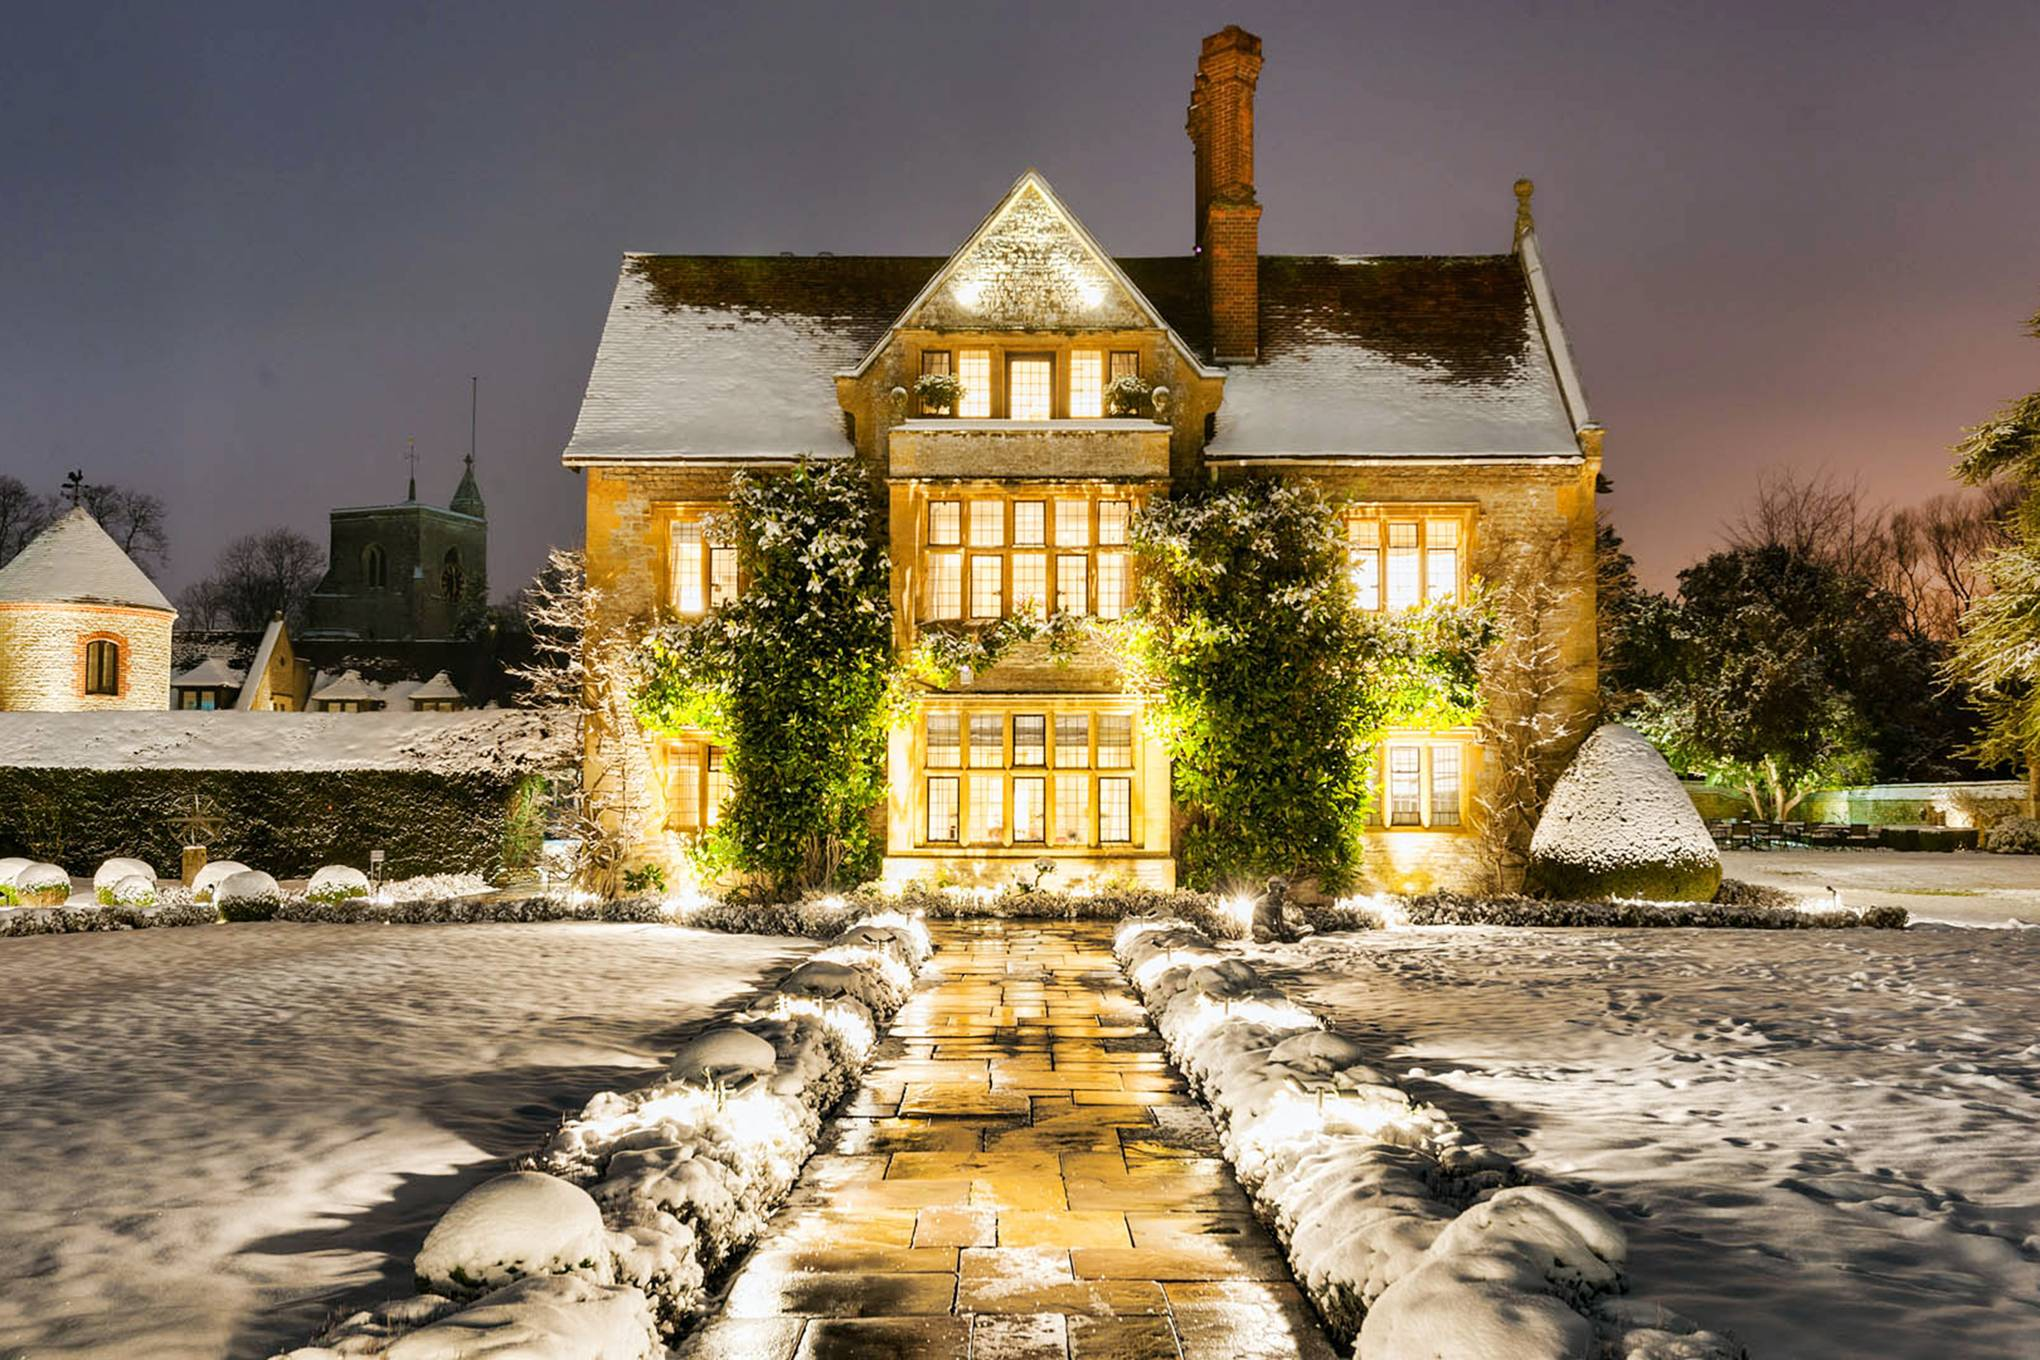 The best hotels for Christmas in the UK